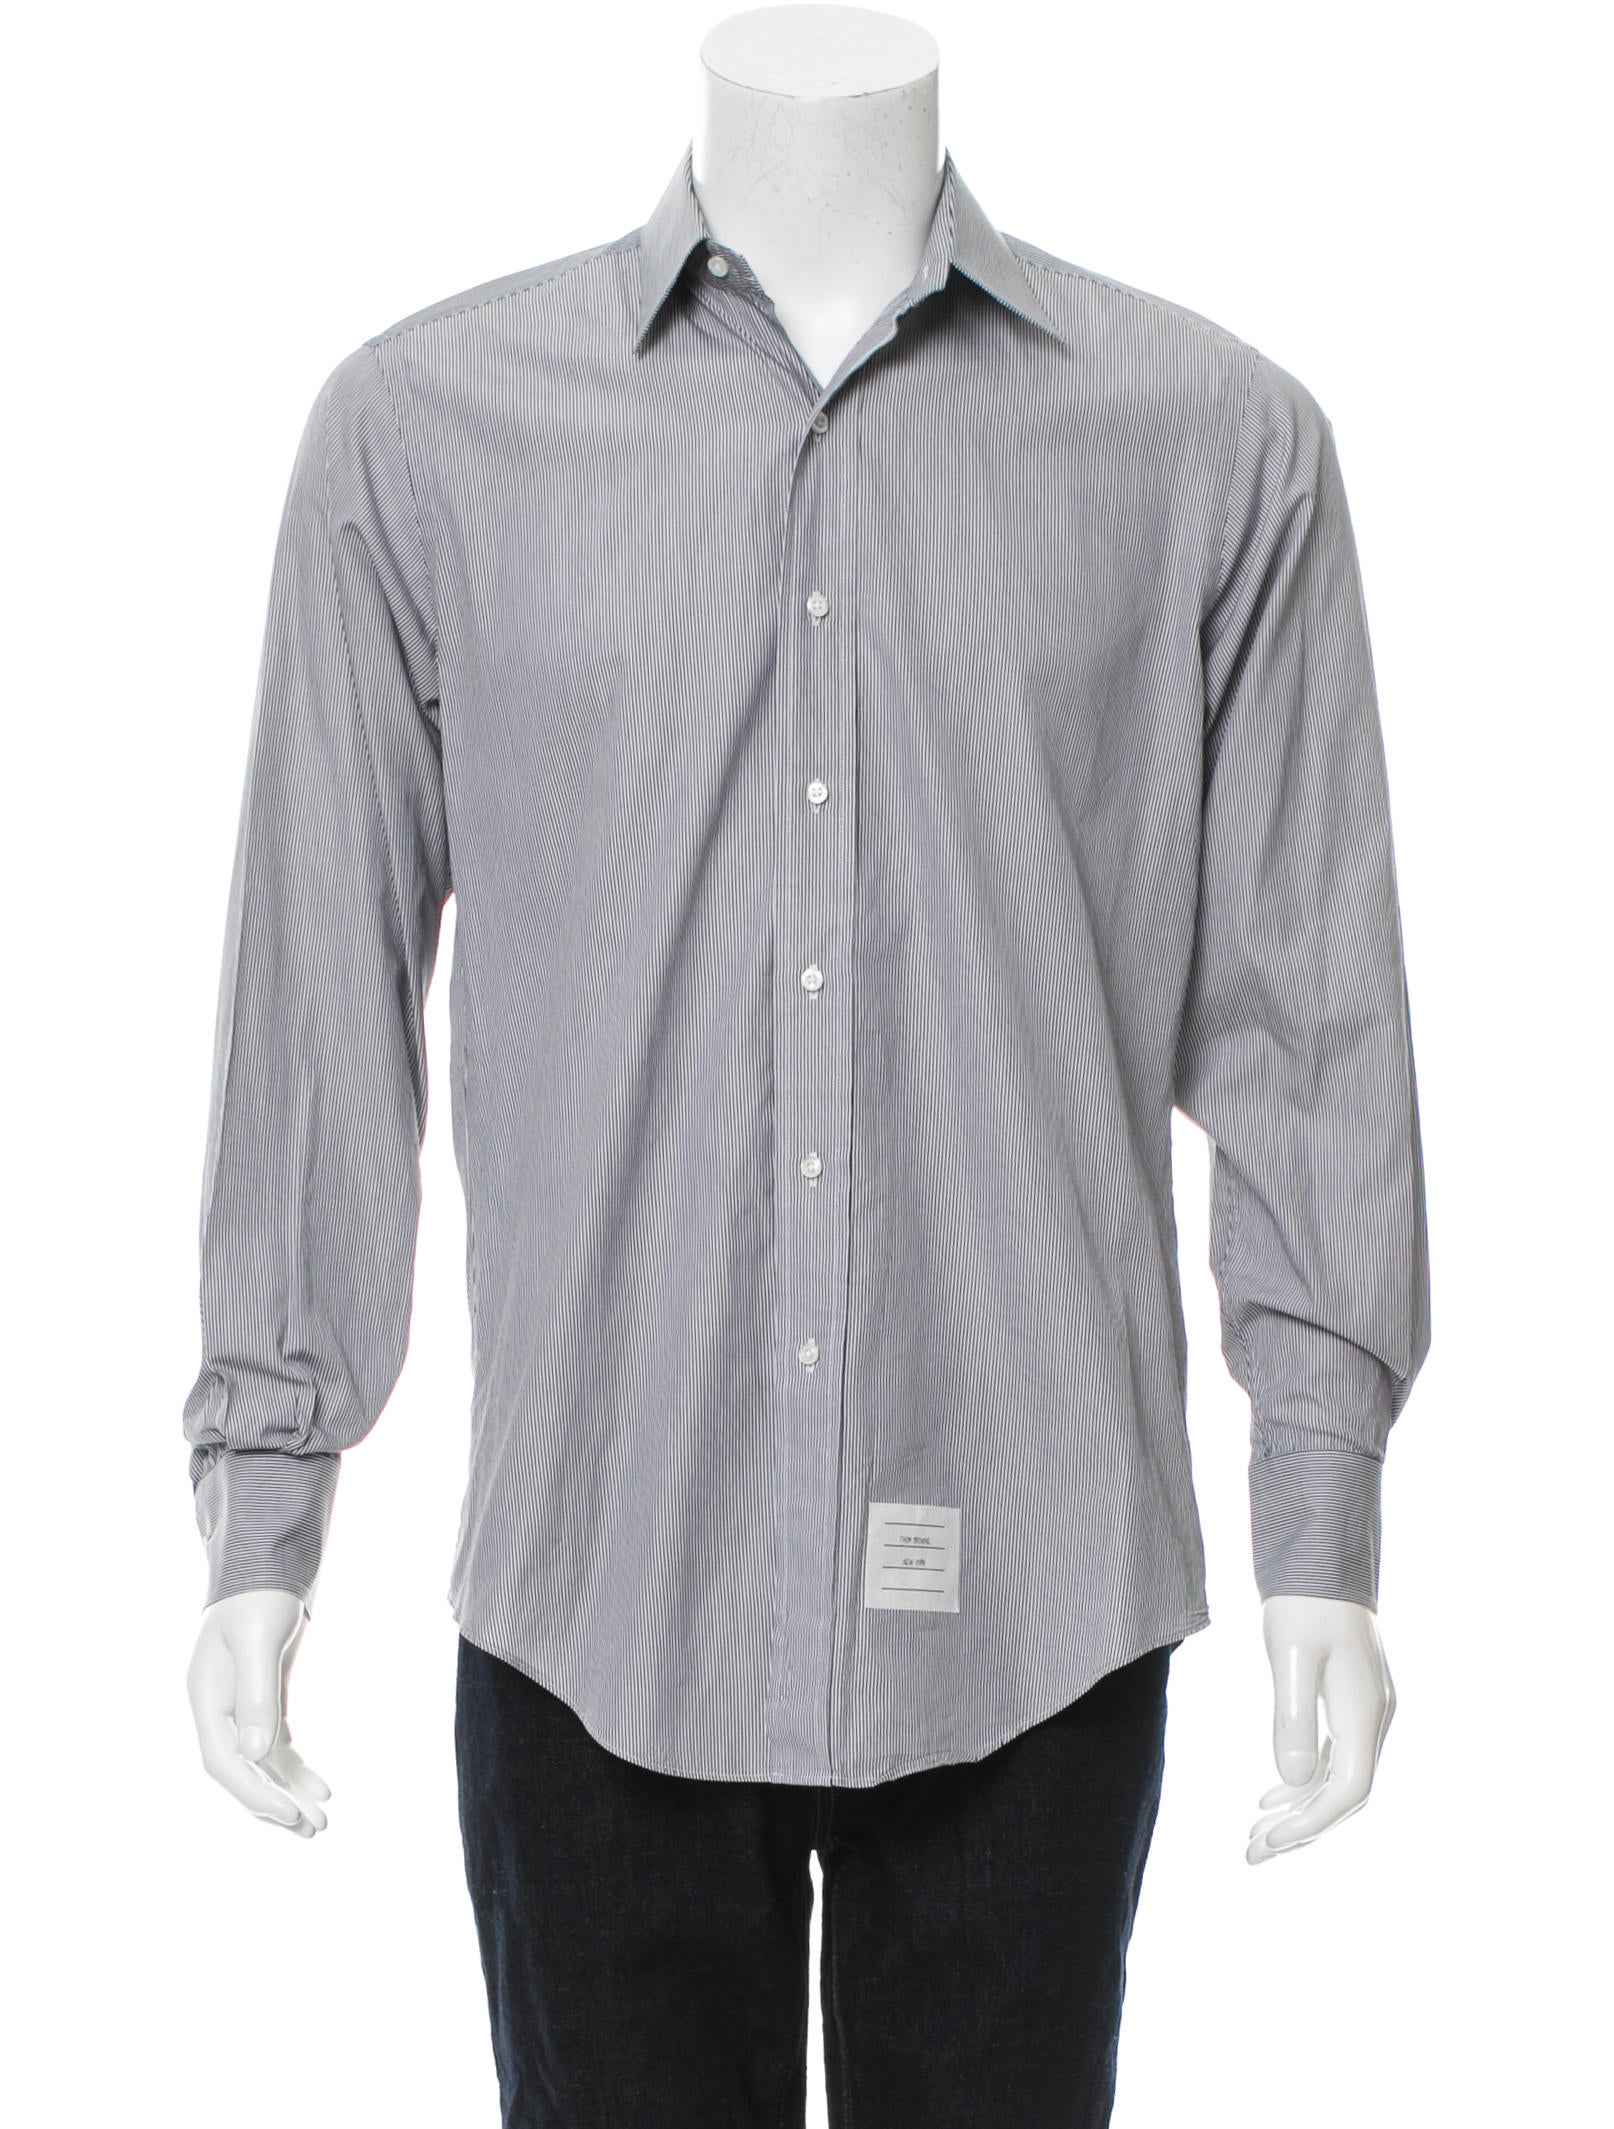 Thom browne pinstripe button up shirt clothing for Thom browne shirt sale